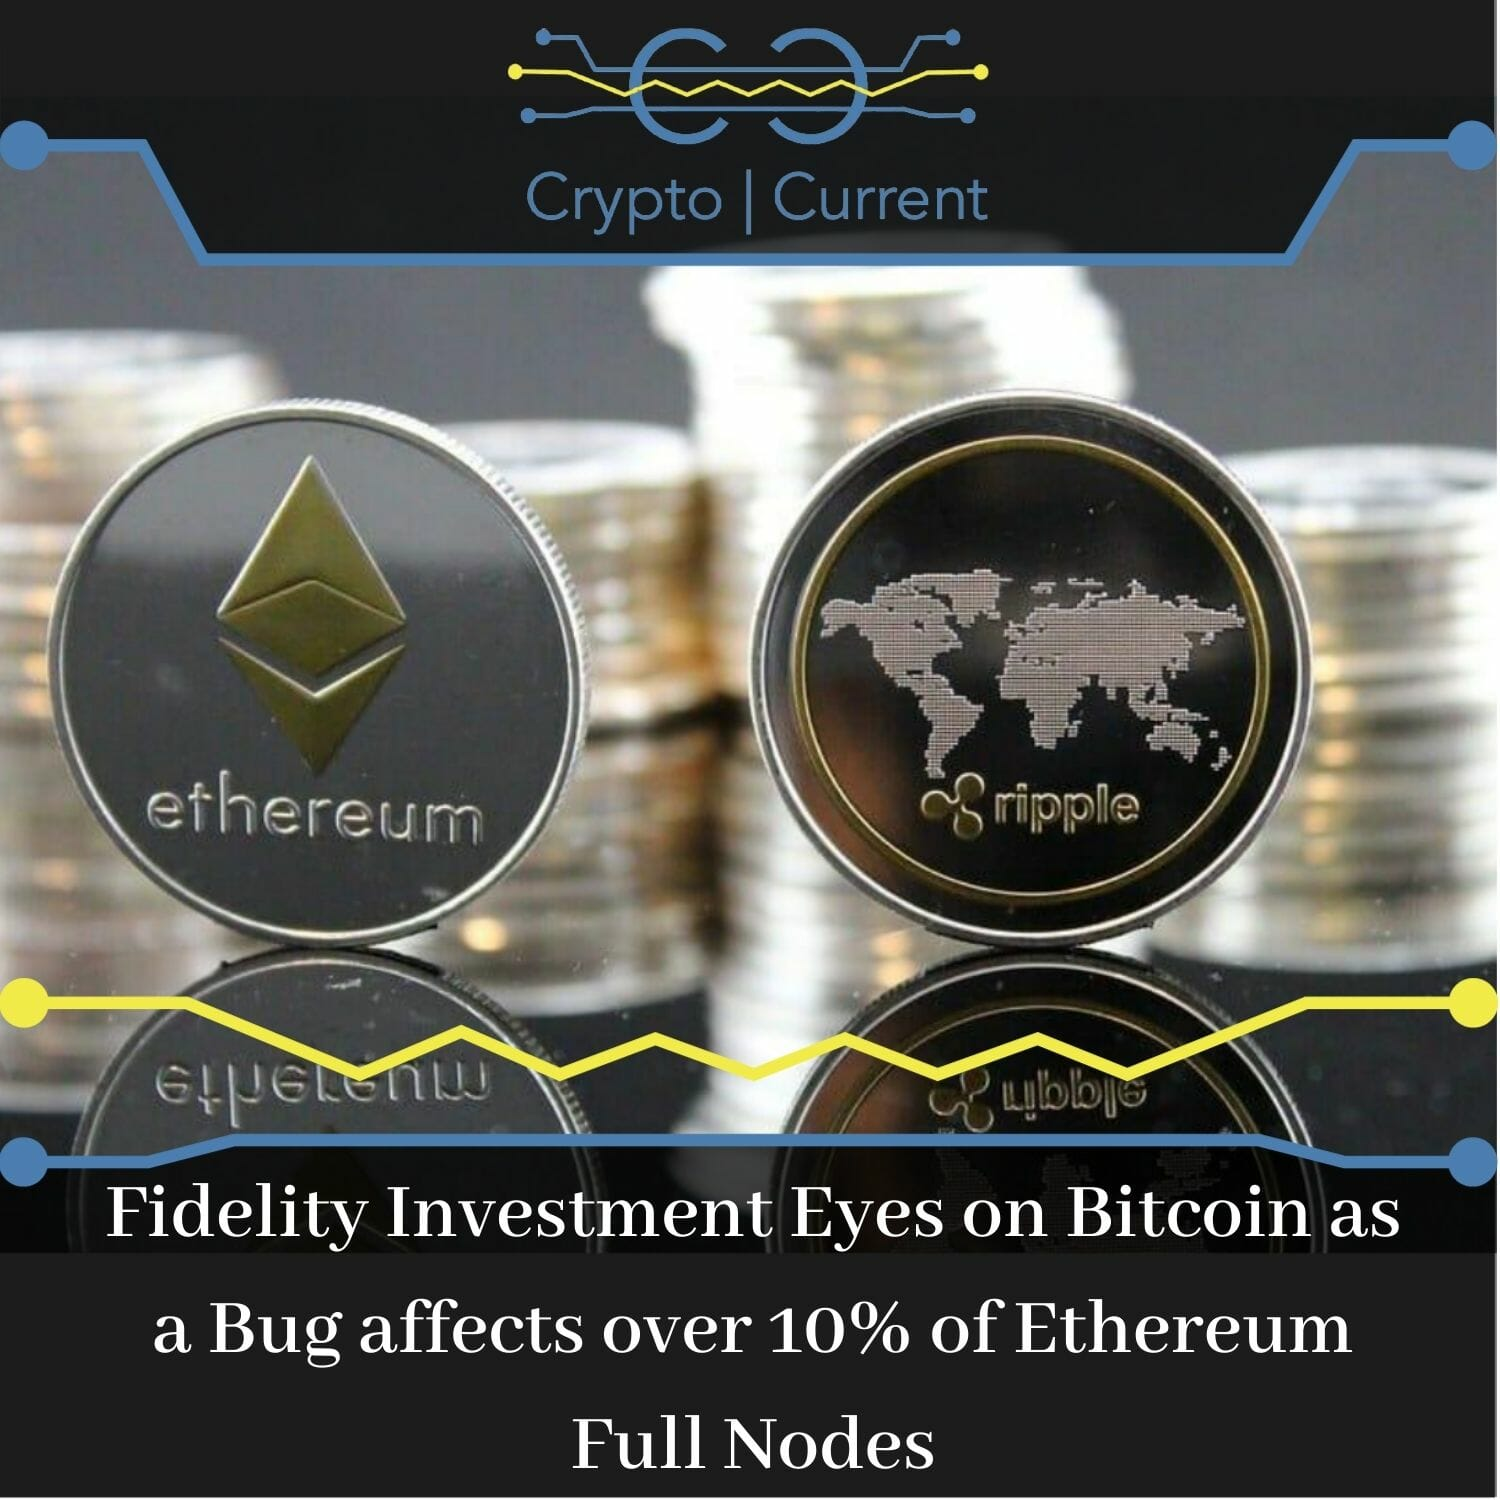 Fidelity Investment Eyes on Bitcoin as a Bug affects over 10% of Ethereum Full Nodes